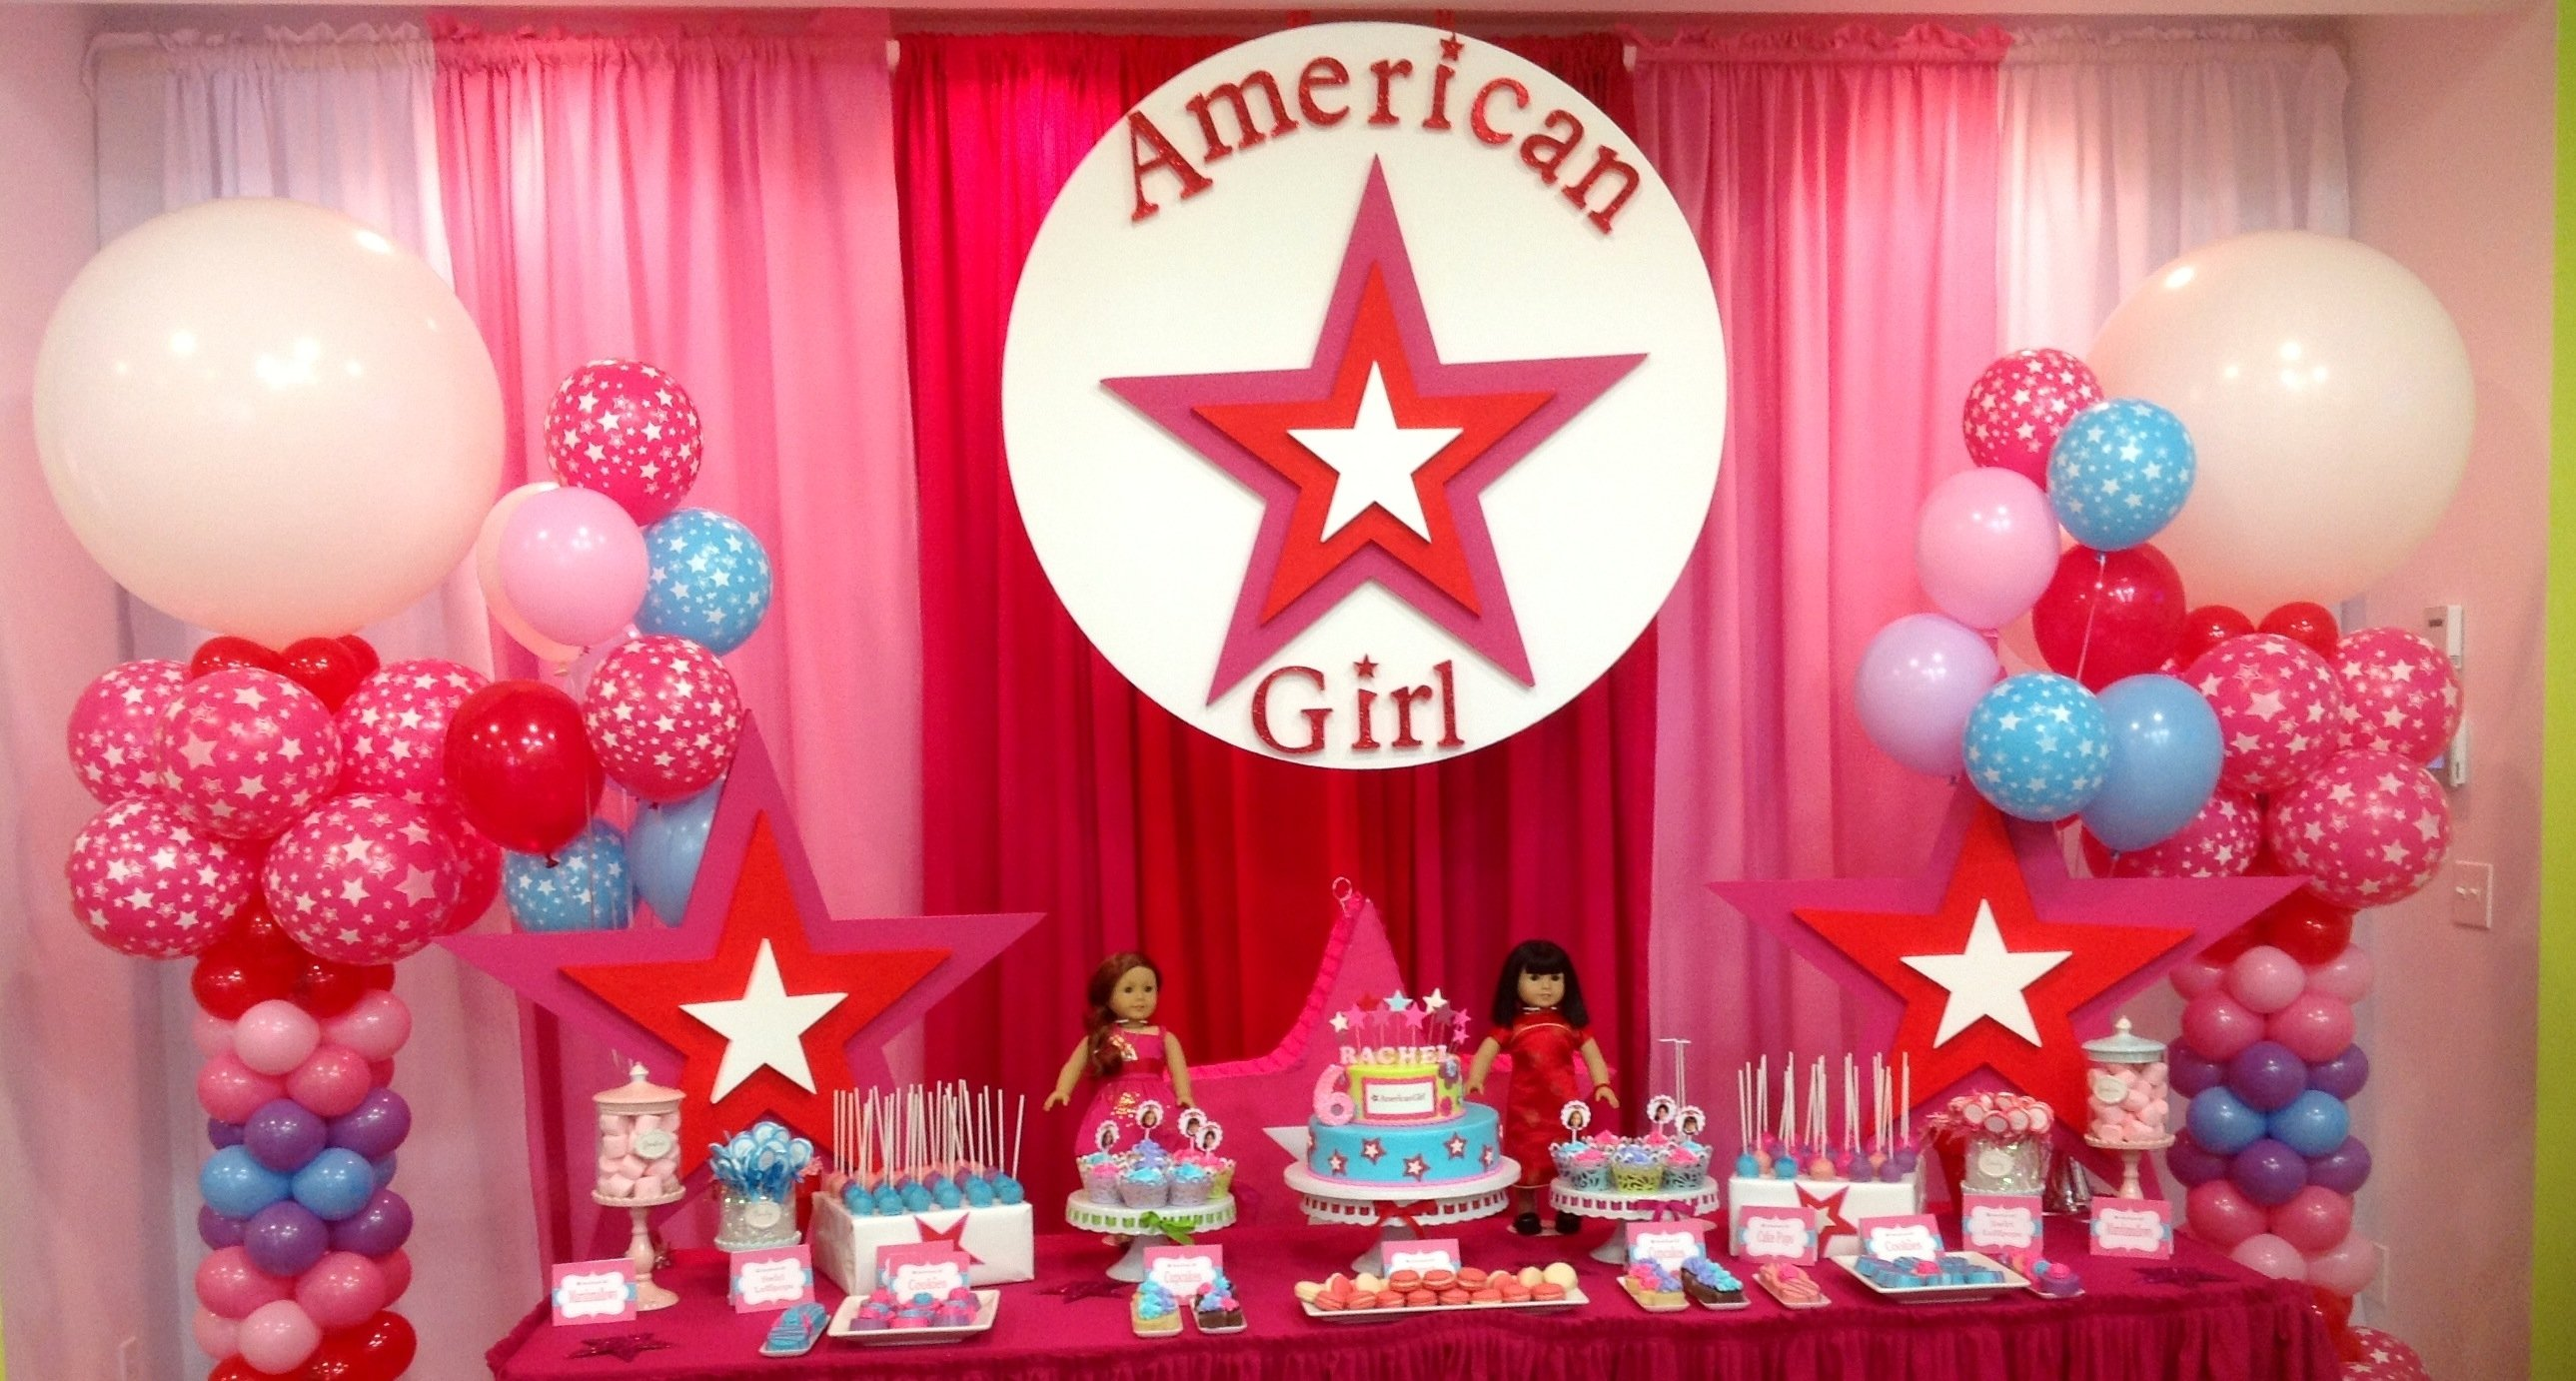 10 Attractive American Girl Doll Party Ideas american girl party american girl party ideas pinterest